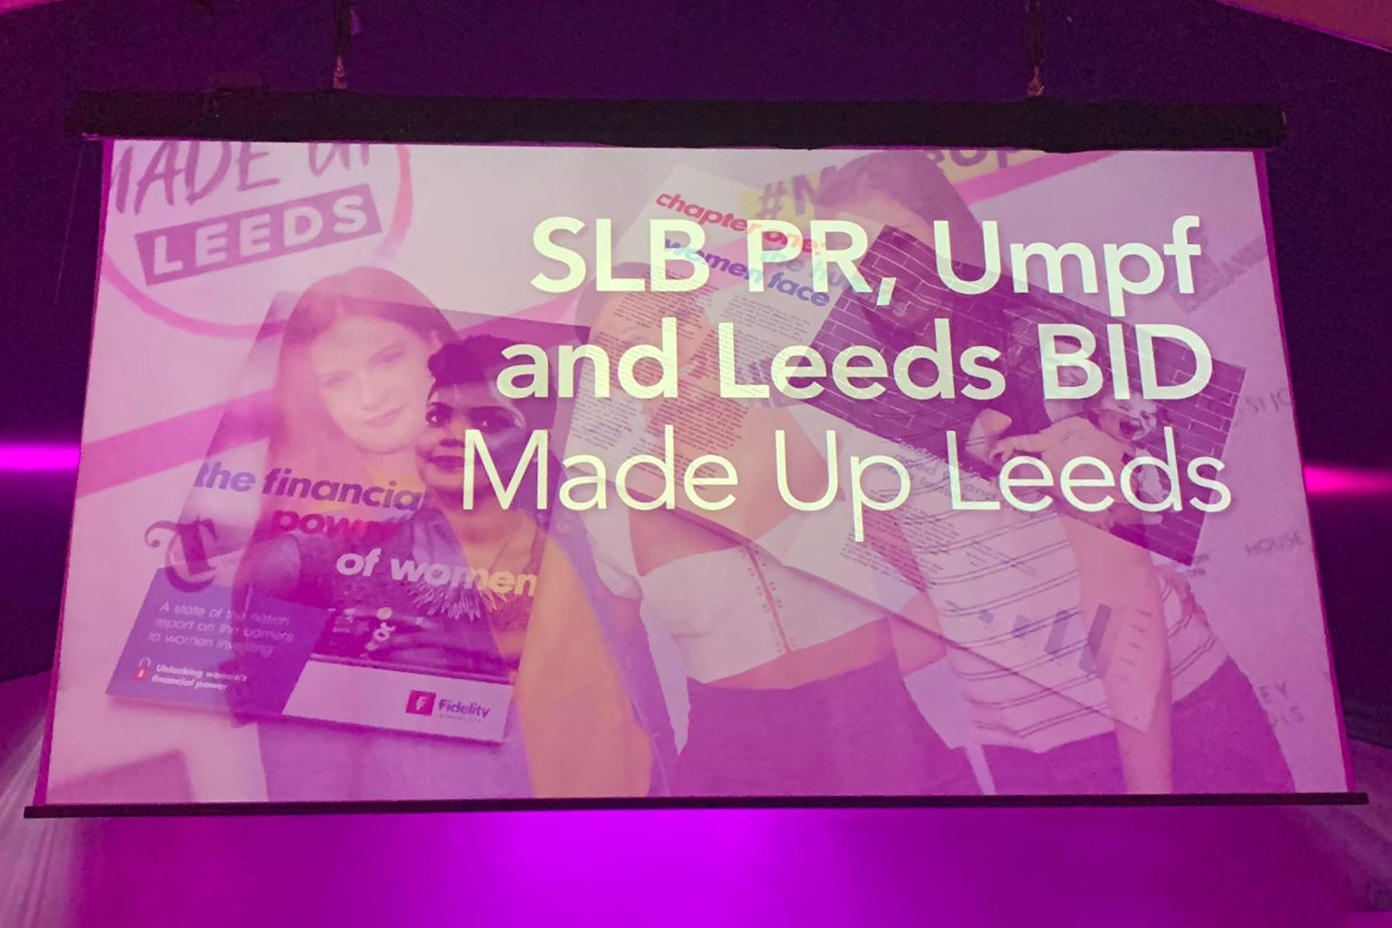 SLB PR, UMPF and Leeds Bid won the CIPR Excellence Award for Best Integrated Campaign